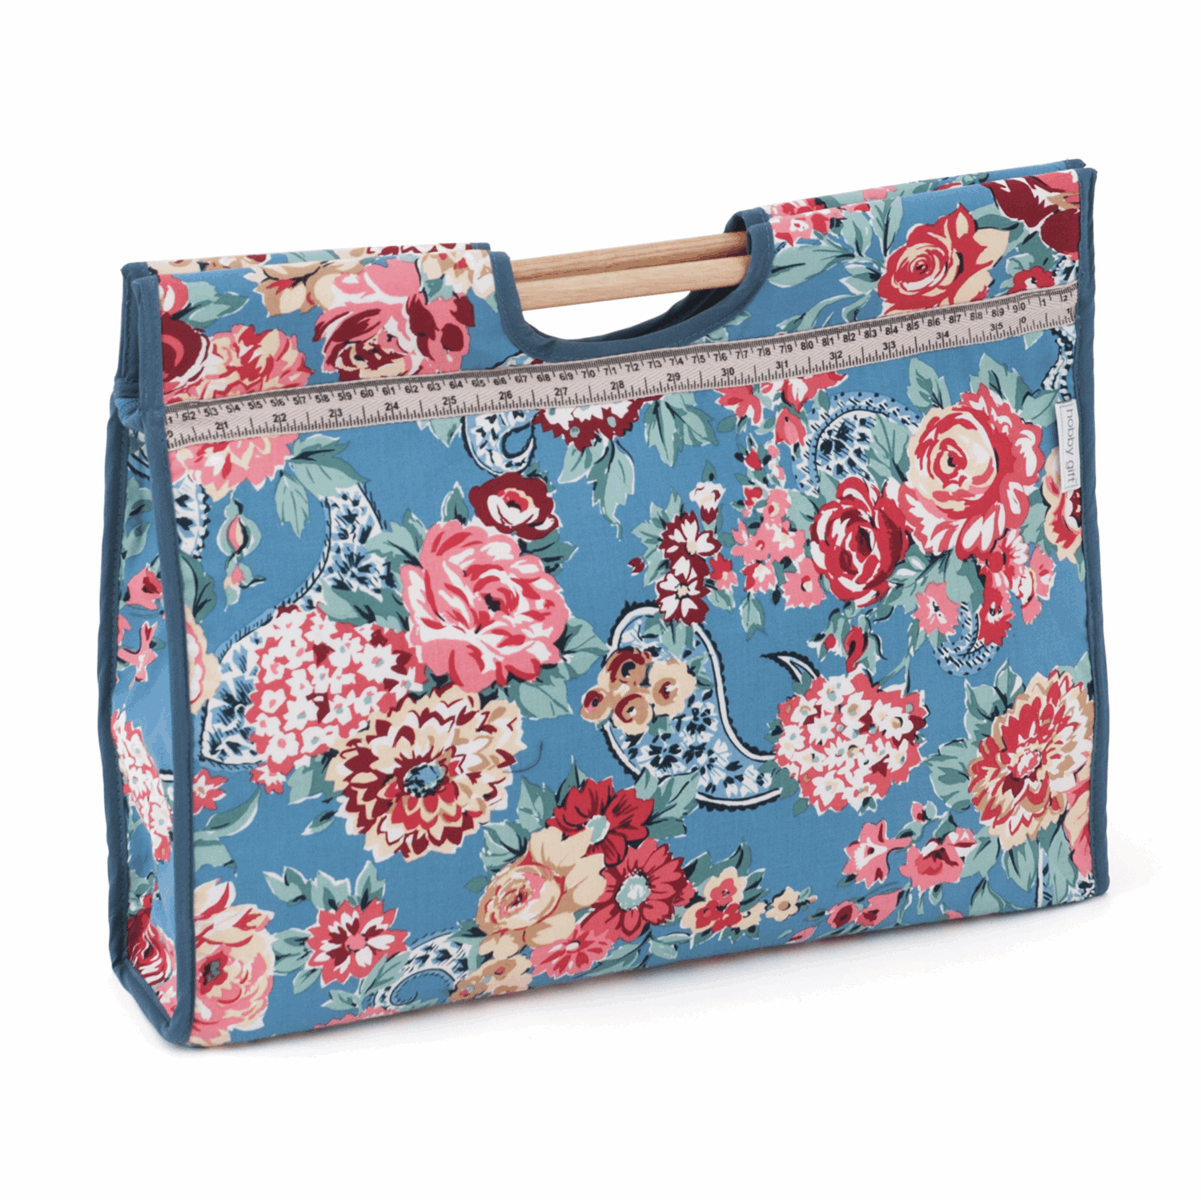 Picture of Craft Bag with Wooden Handles: Kashmir Rose